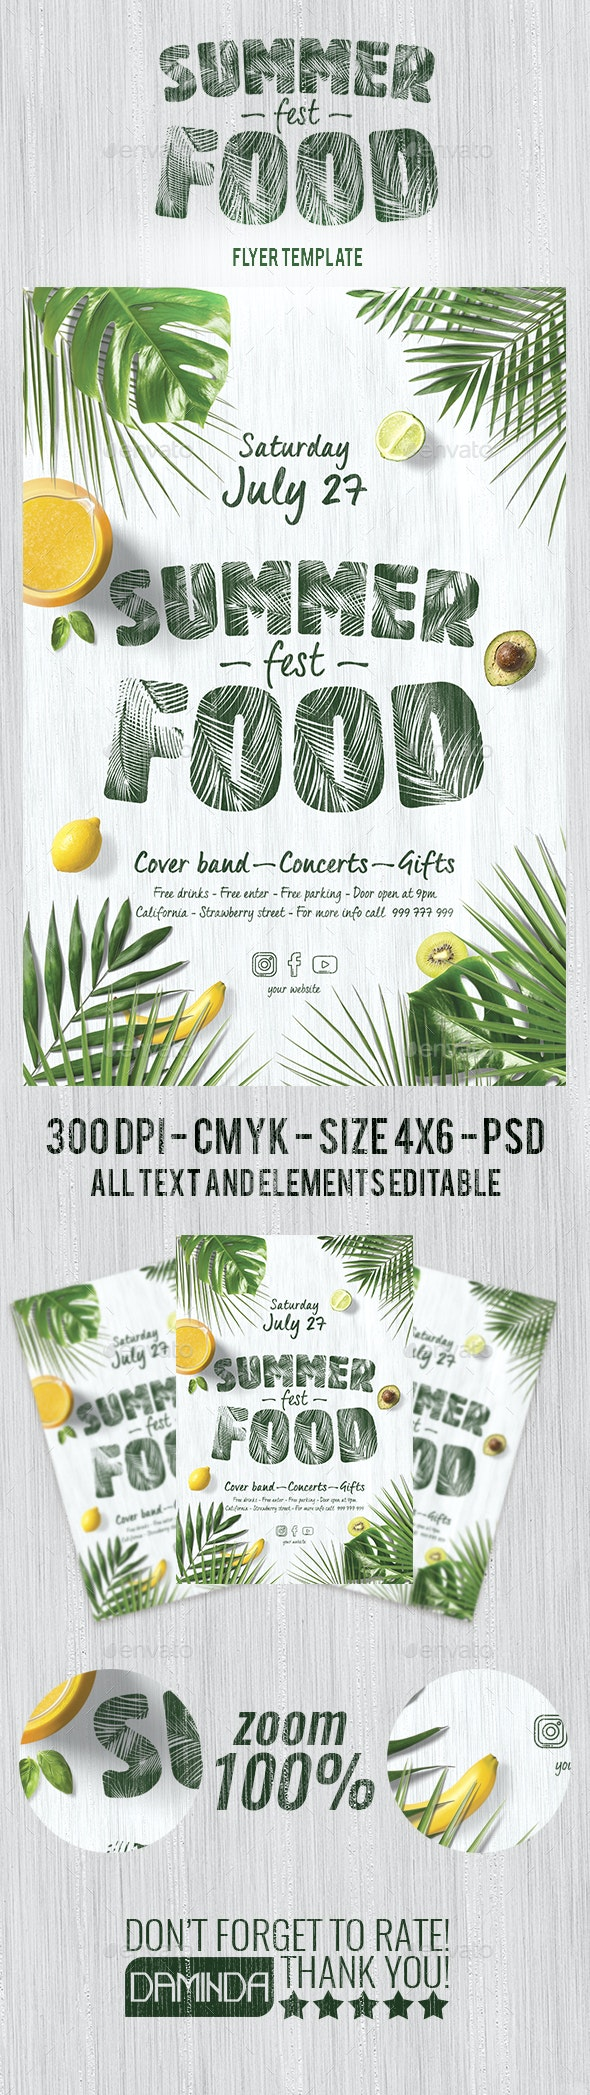 Summer Food Fest 2019 Flyer Template - Clubs & Parties Events